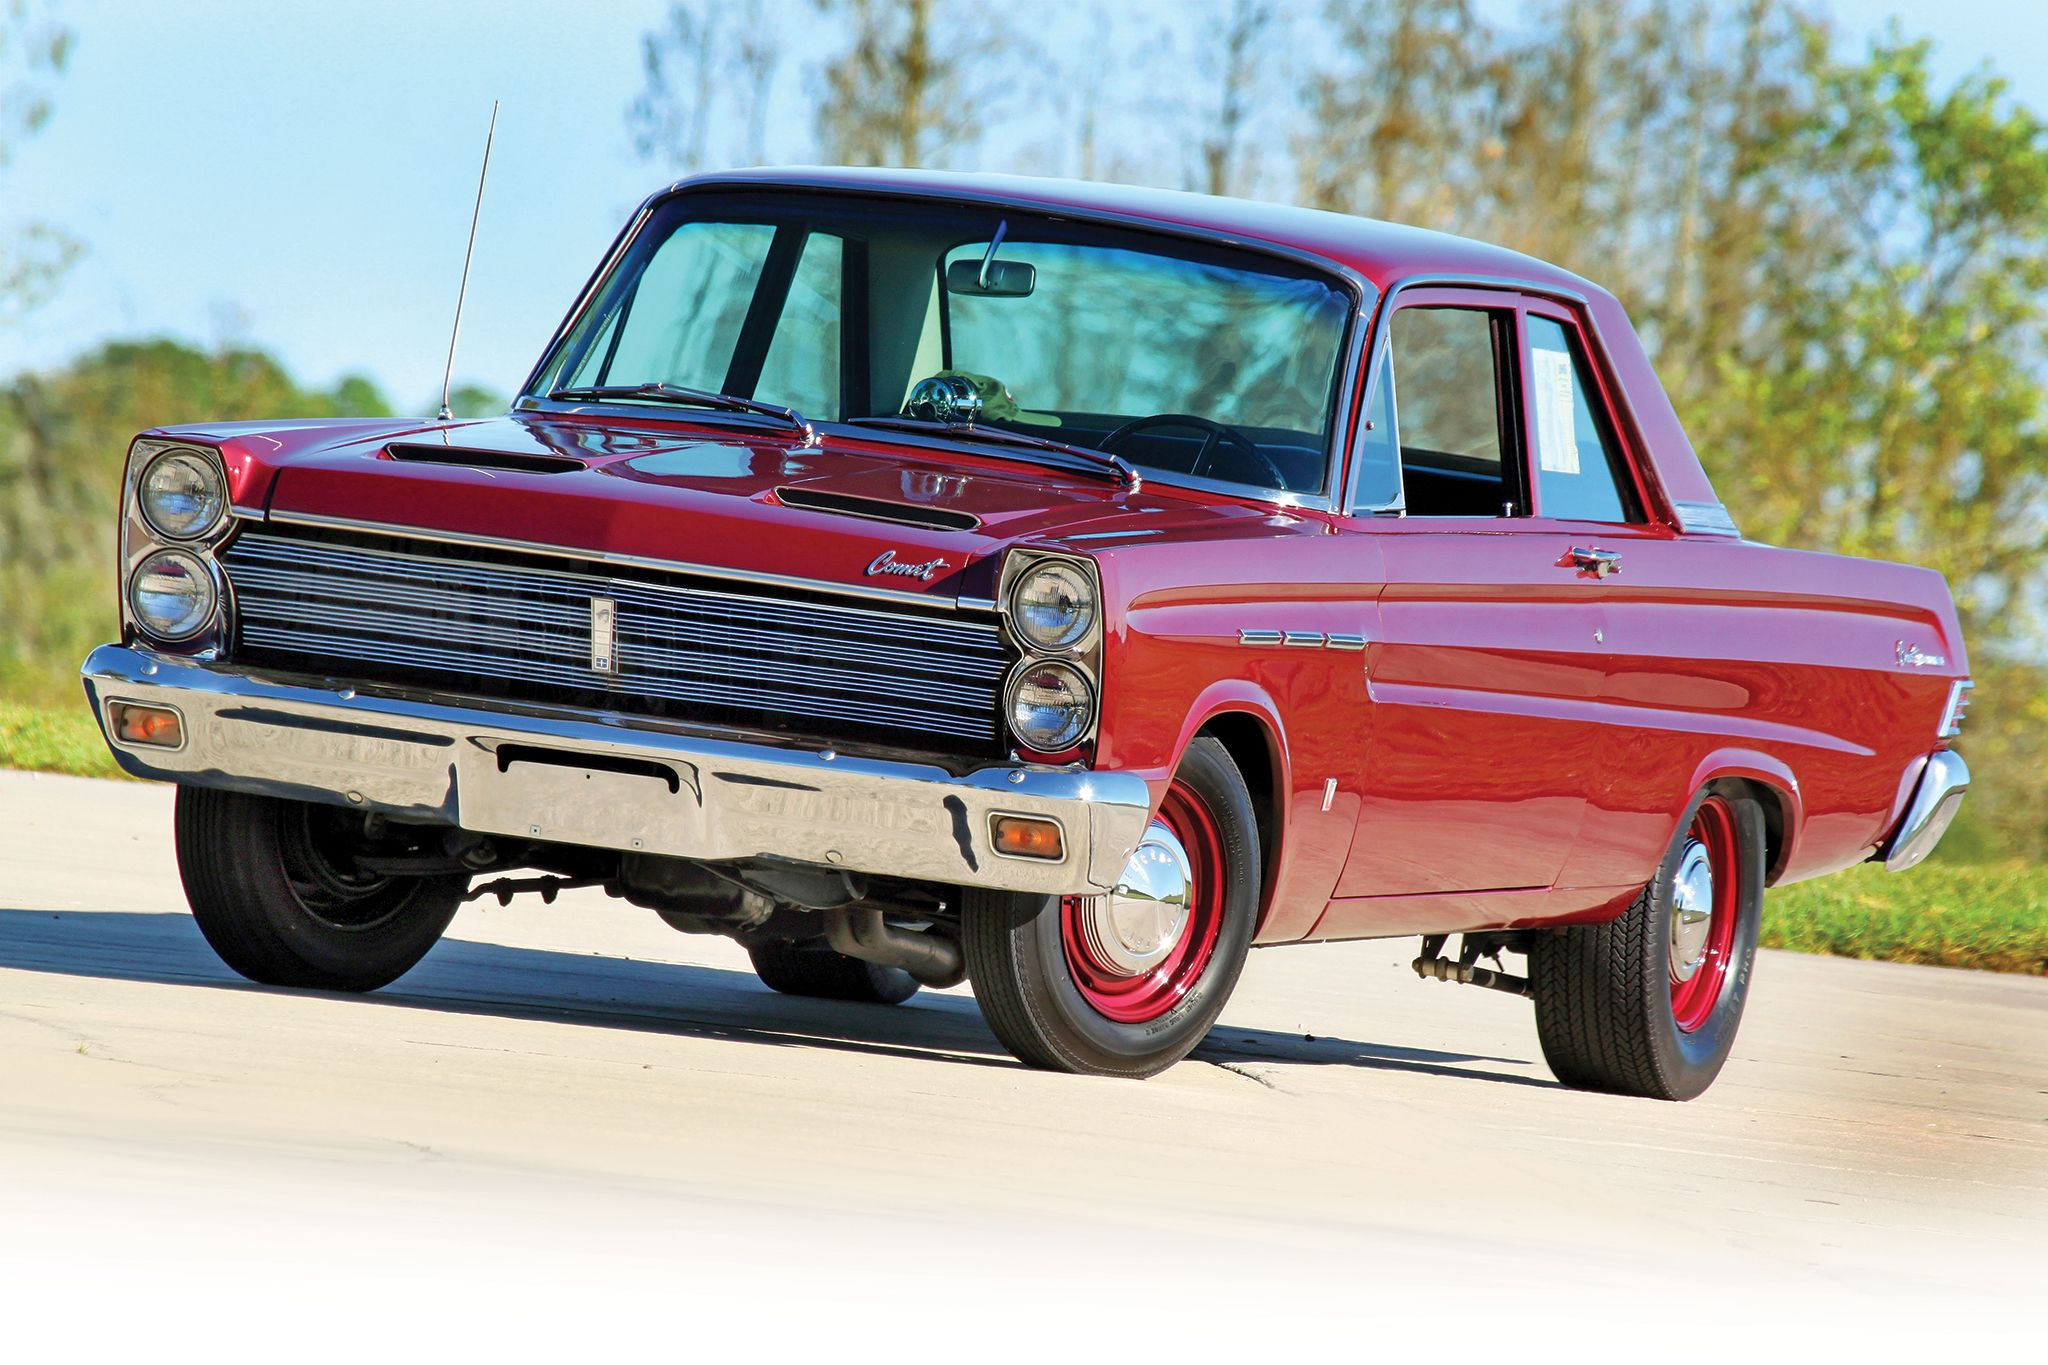 65 COMET | Ford Falcon>Mercury Comet | Pinterest | Cars, Ford and ...